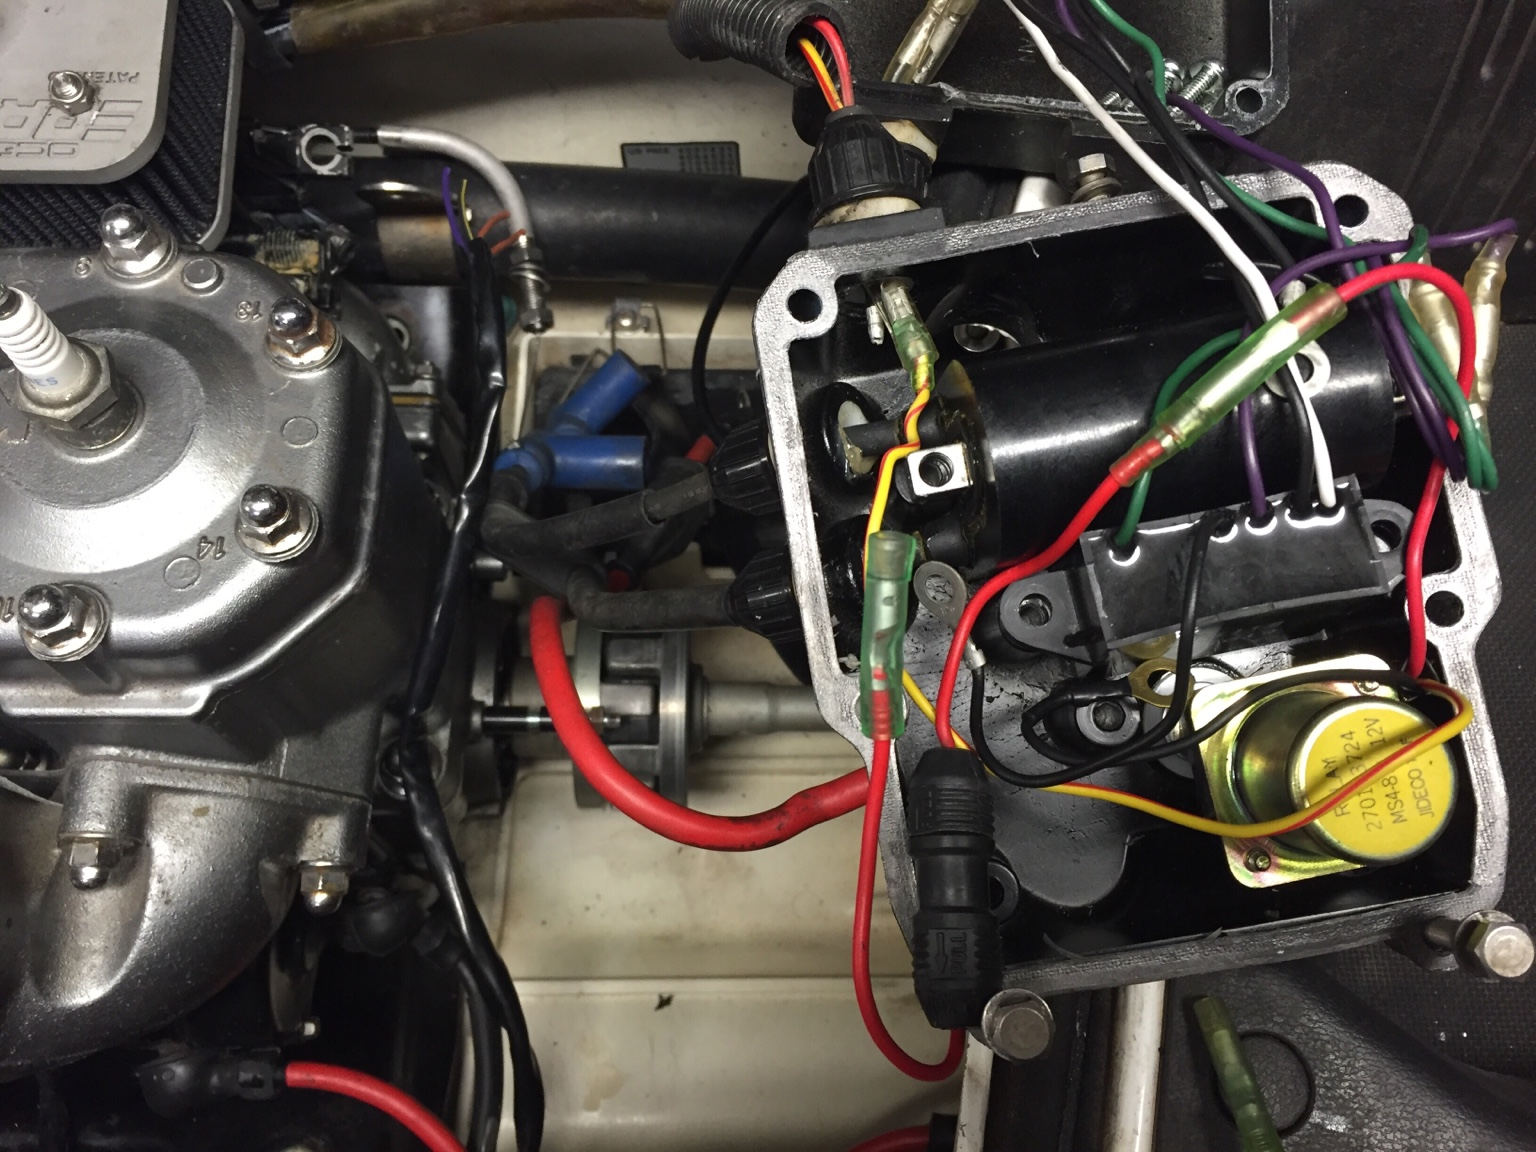 550sx 650 conversion wiring  kawasaki 550 sx wiring diagram #3